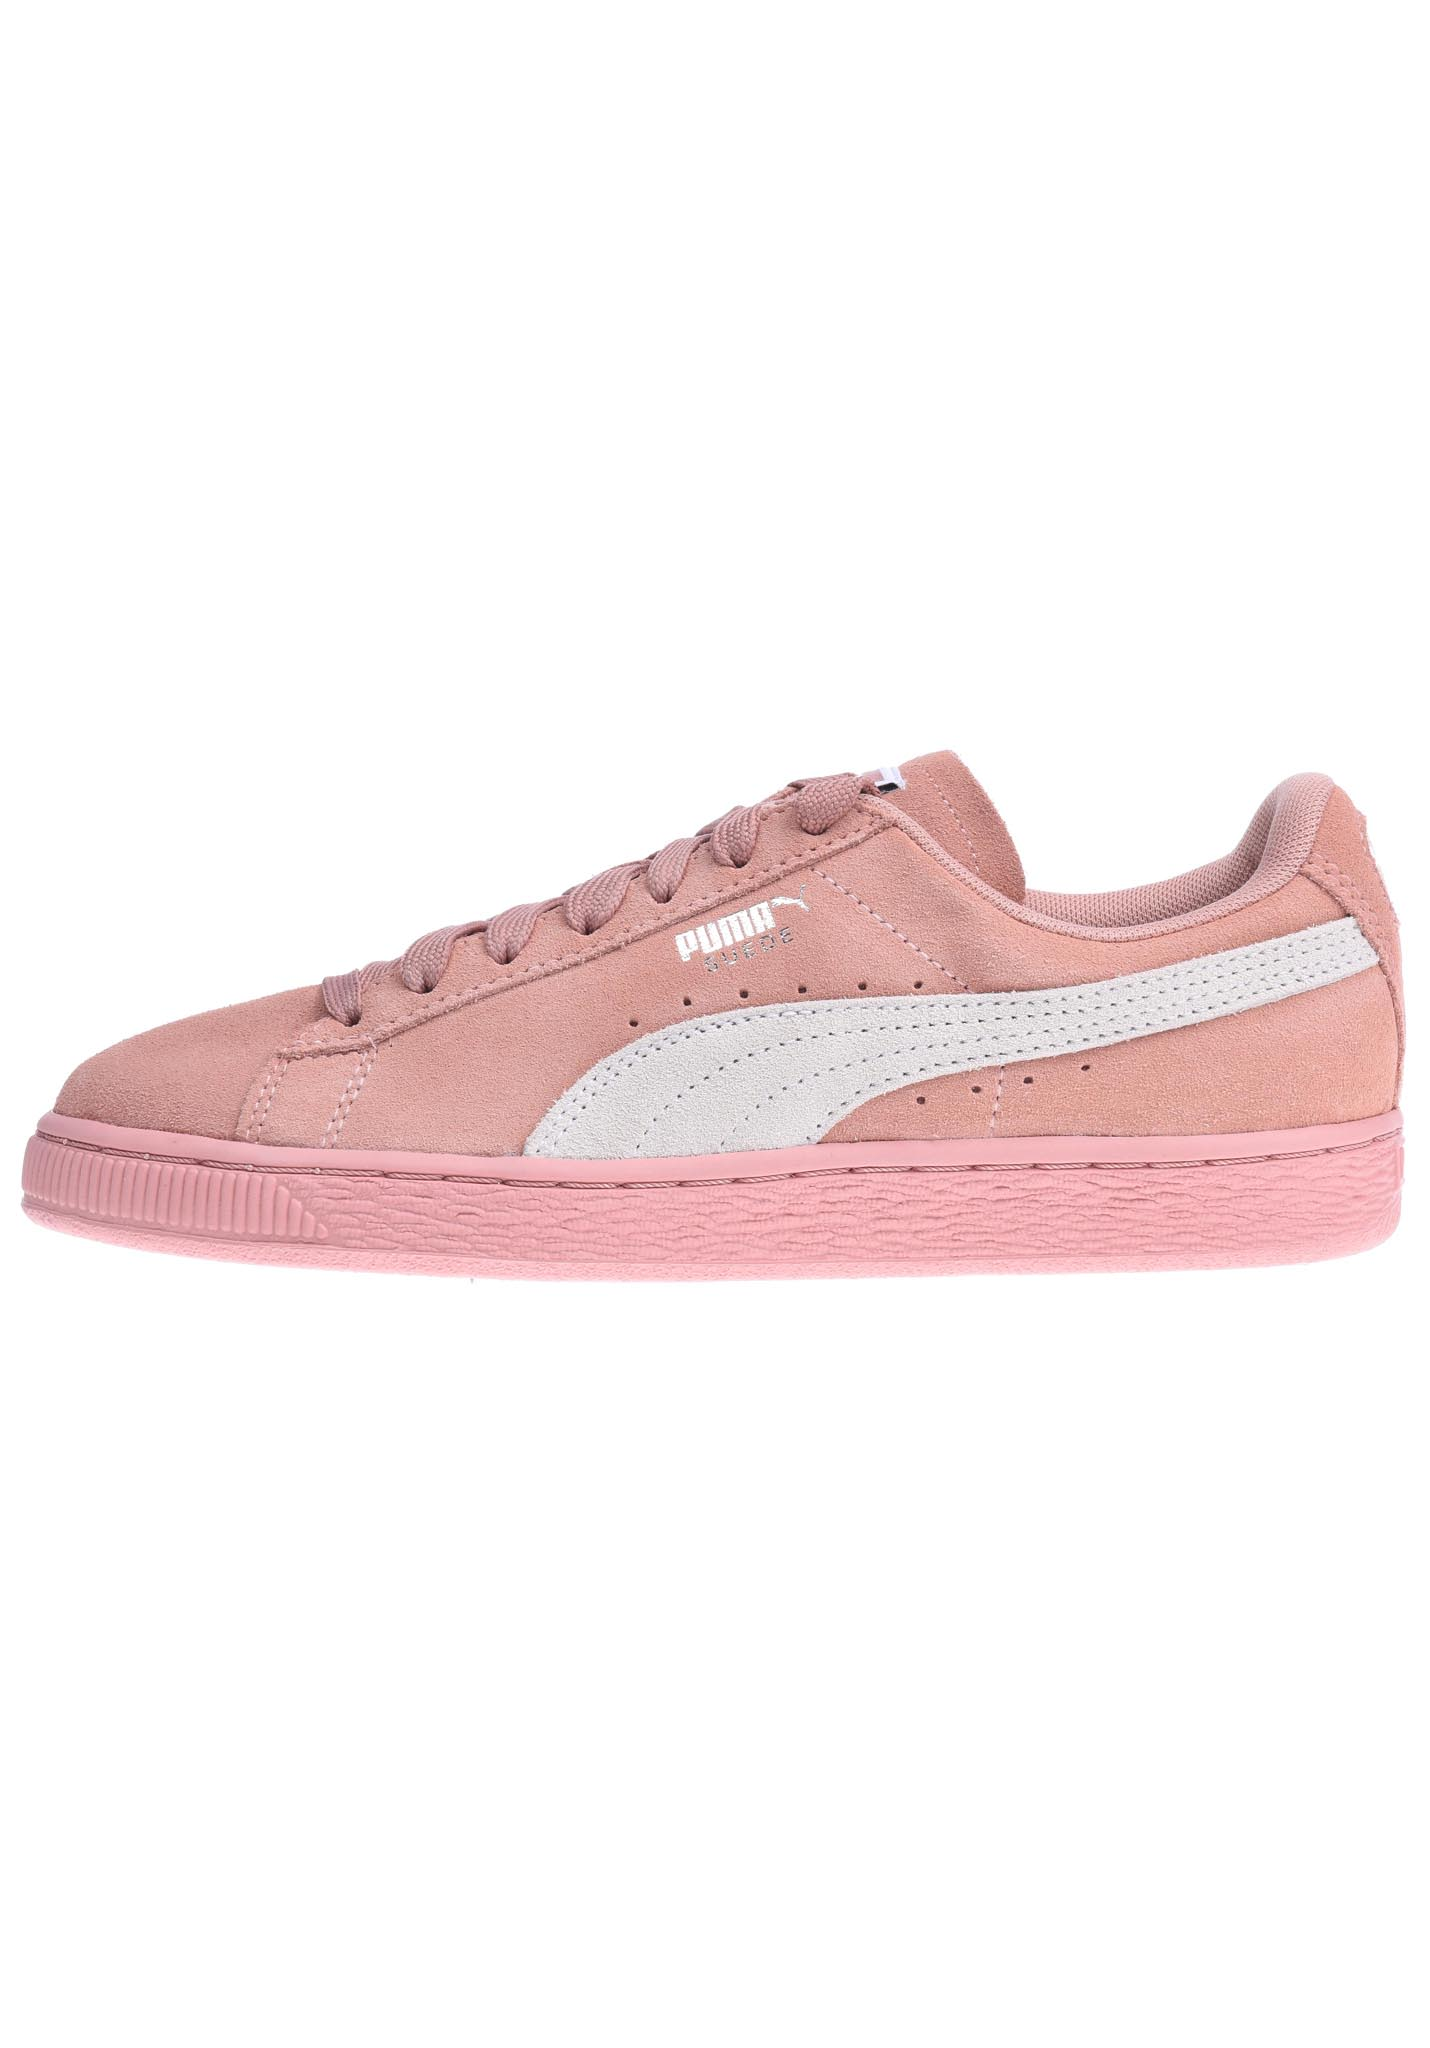 Puma Suede Classic - Sneakers for Women - Pink - Planet Sports 8cbedb7ad1e8